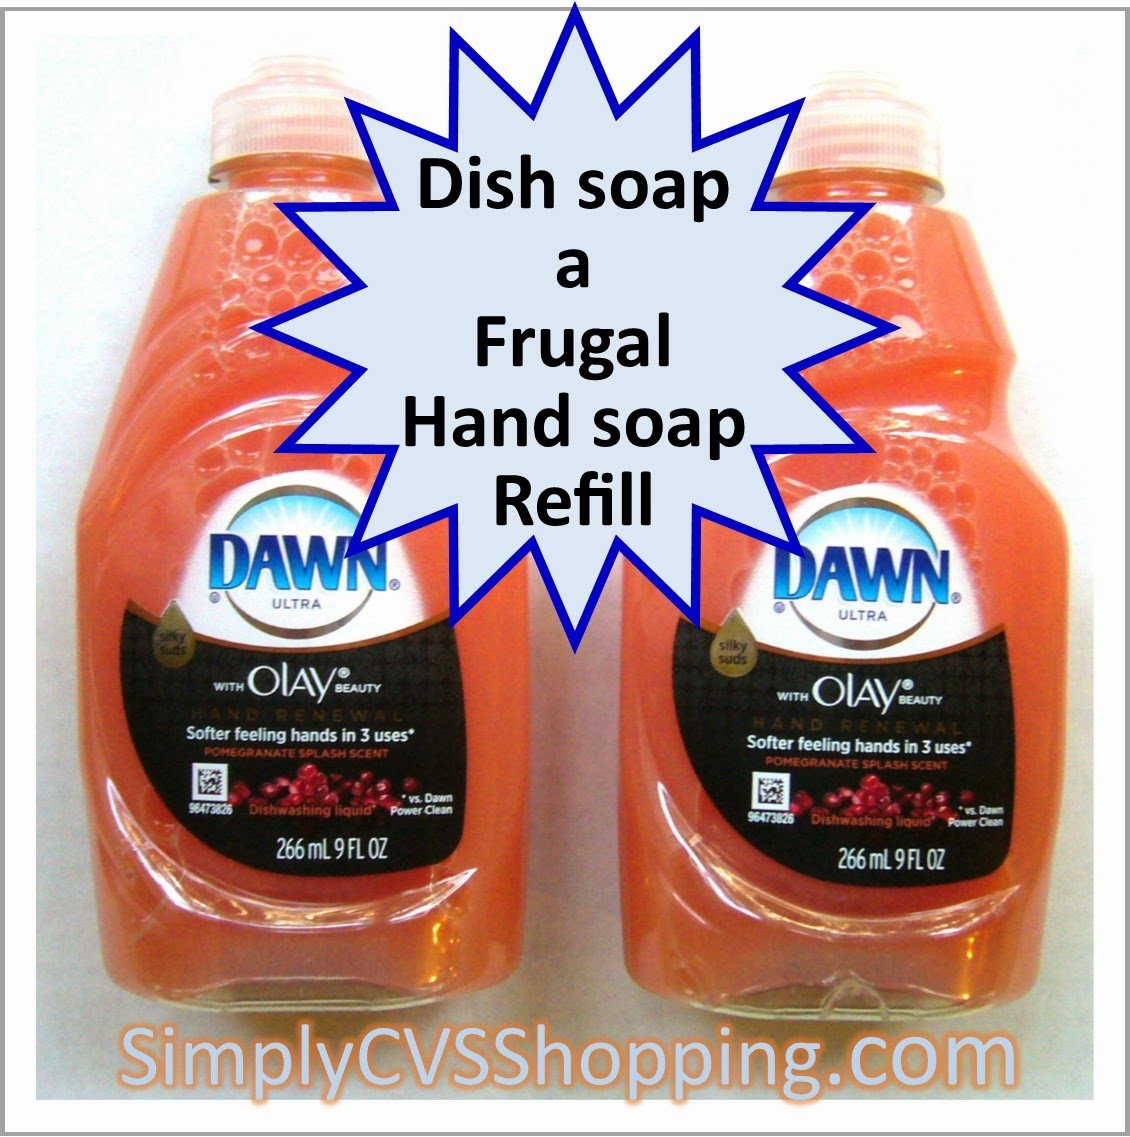 Dish soap as hand soap